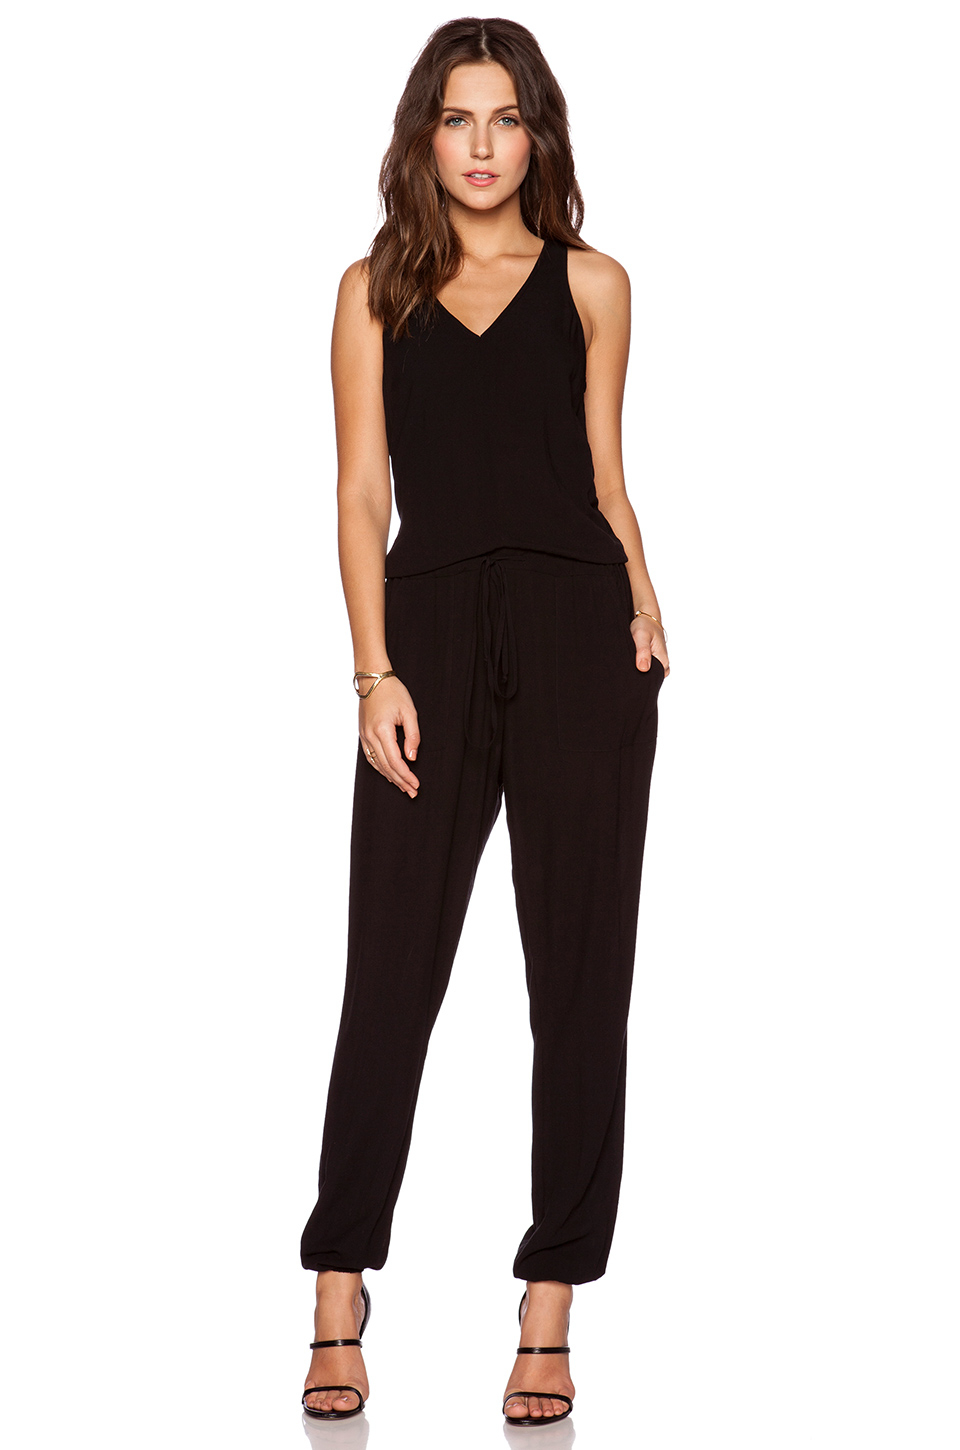 V-neck jumpsuit in woven fabric with a printed pattern. Wrapover front with concealed snap fastener at top, 3/4-length sleeves with cuffs, and an elasticized seam at waist with removable tie belt.